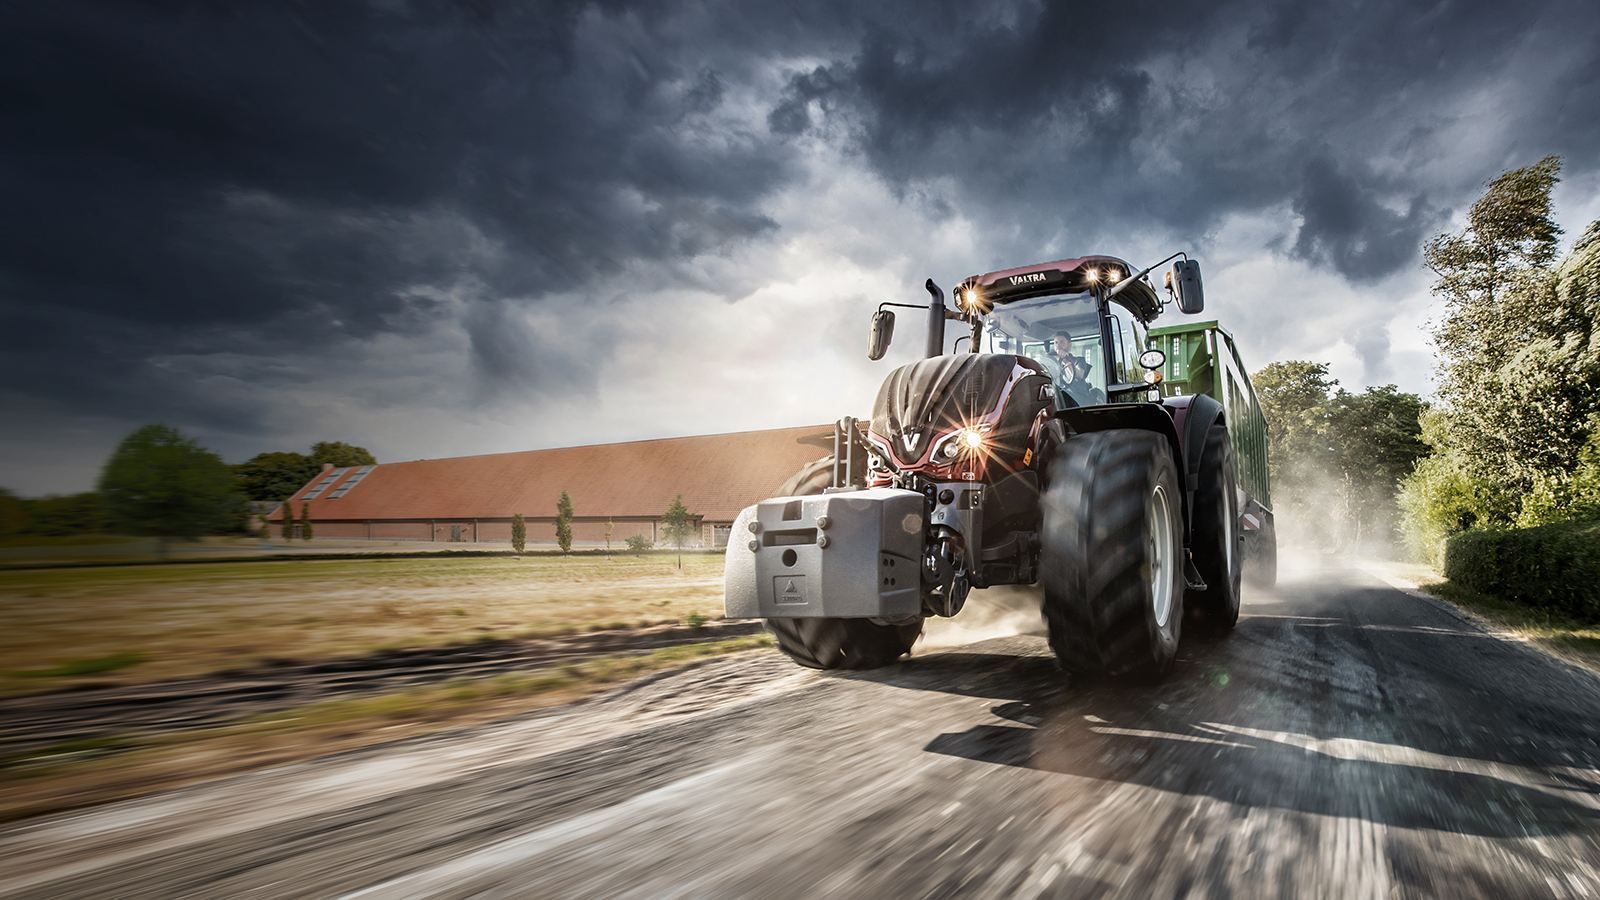 valtra s4 series wite on the field working